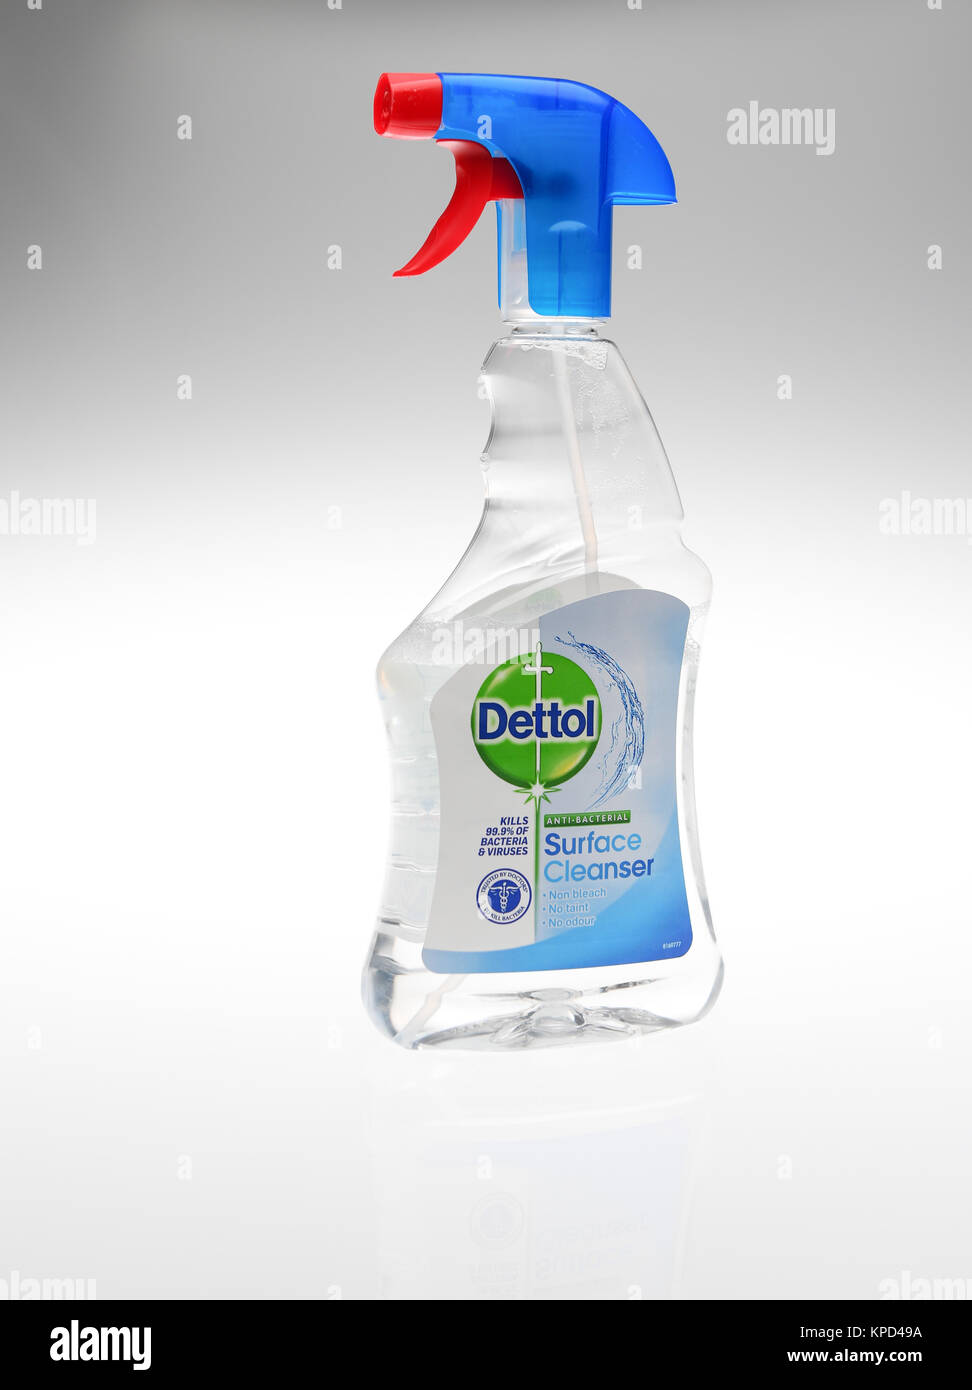 Anti Bacterial Cleaner Stock Photos Cussons Baby Liquid Detergent 750ml Dettol Surface Spray Bottle On White Background Image